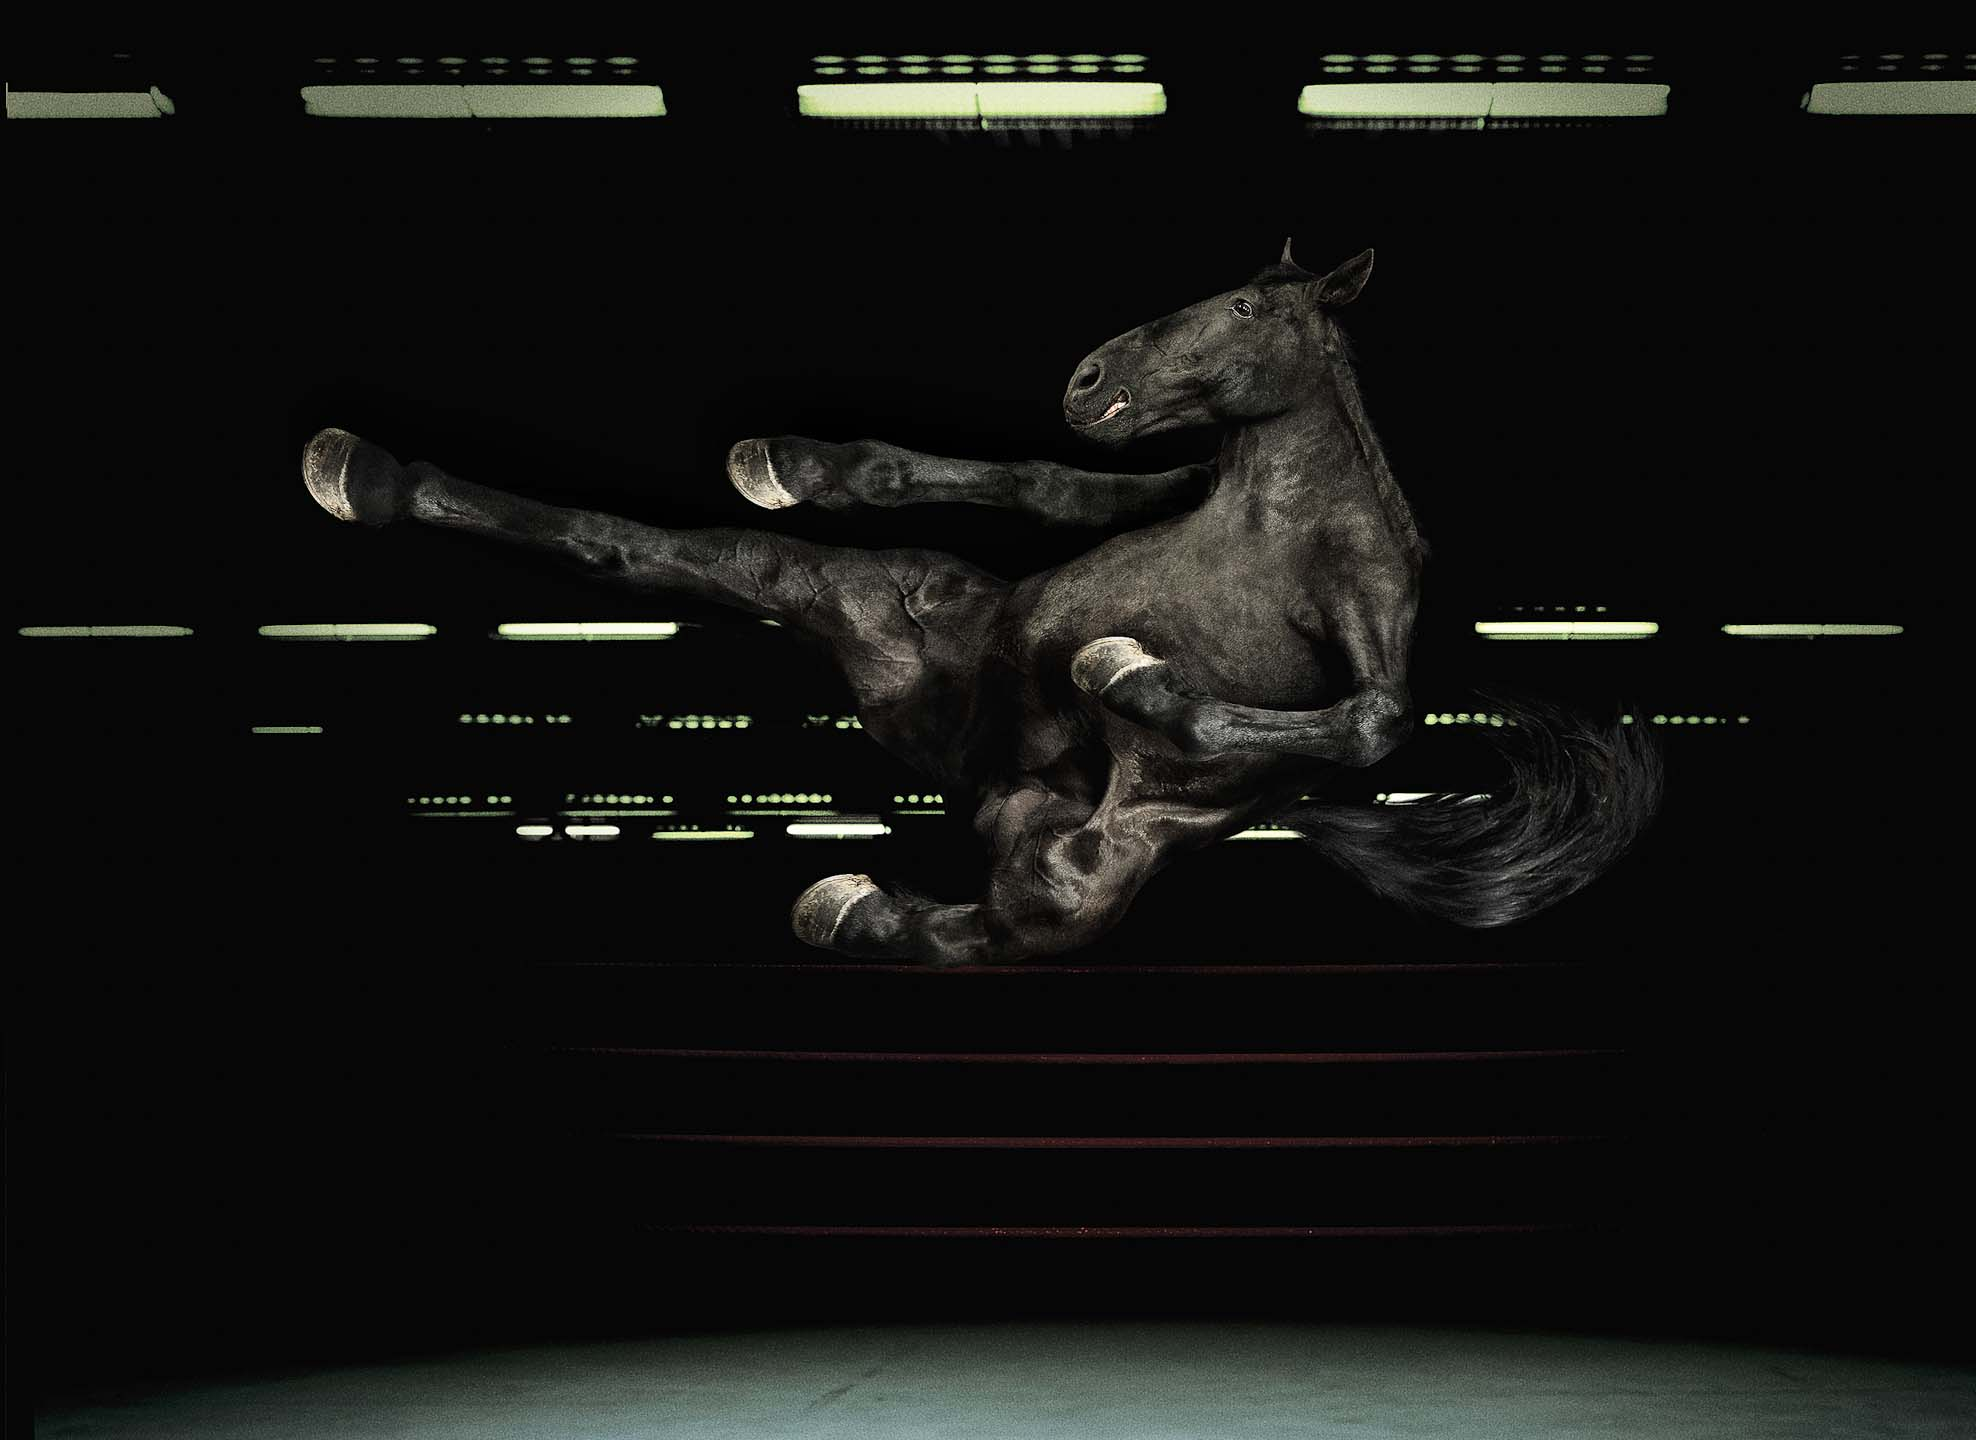 Alex Howe black horse kicking boxing smiling dark studio retouch